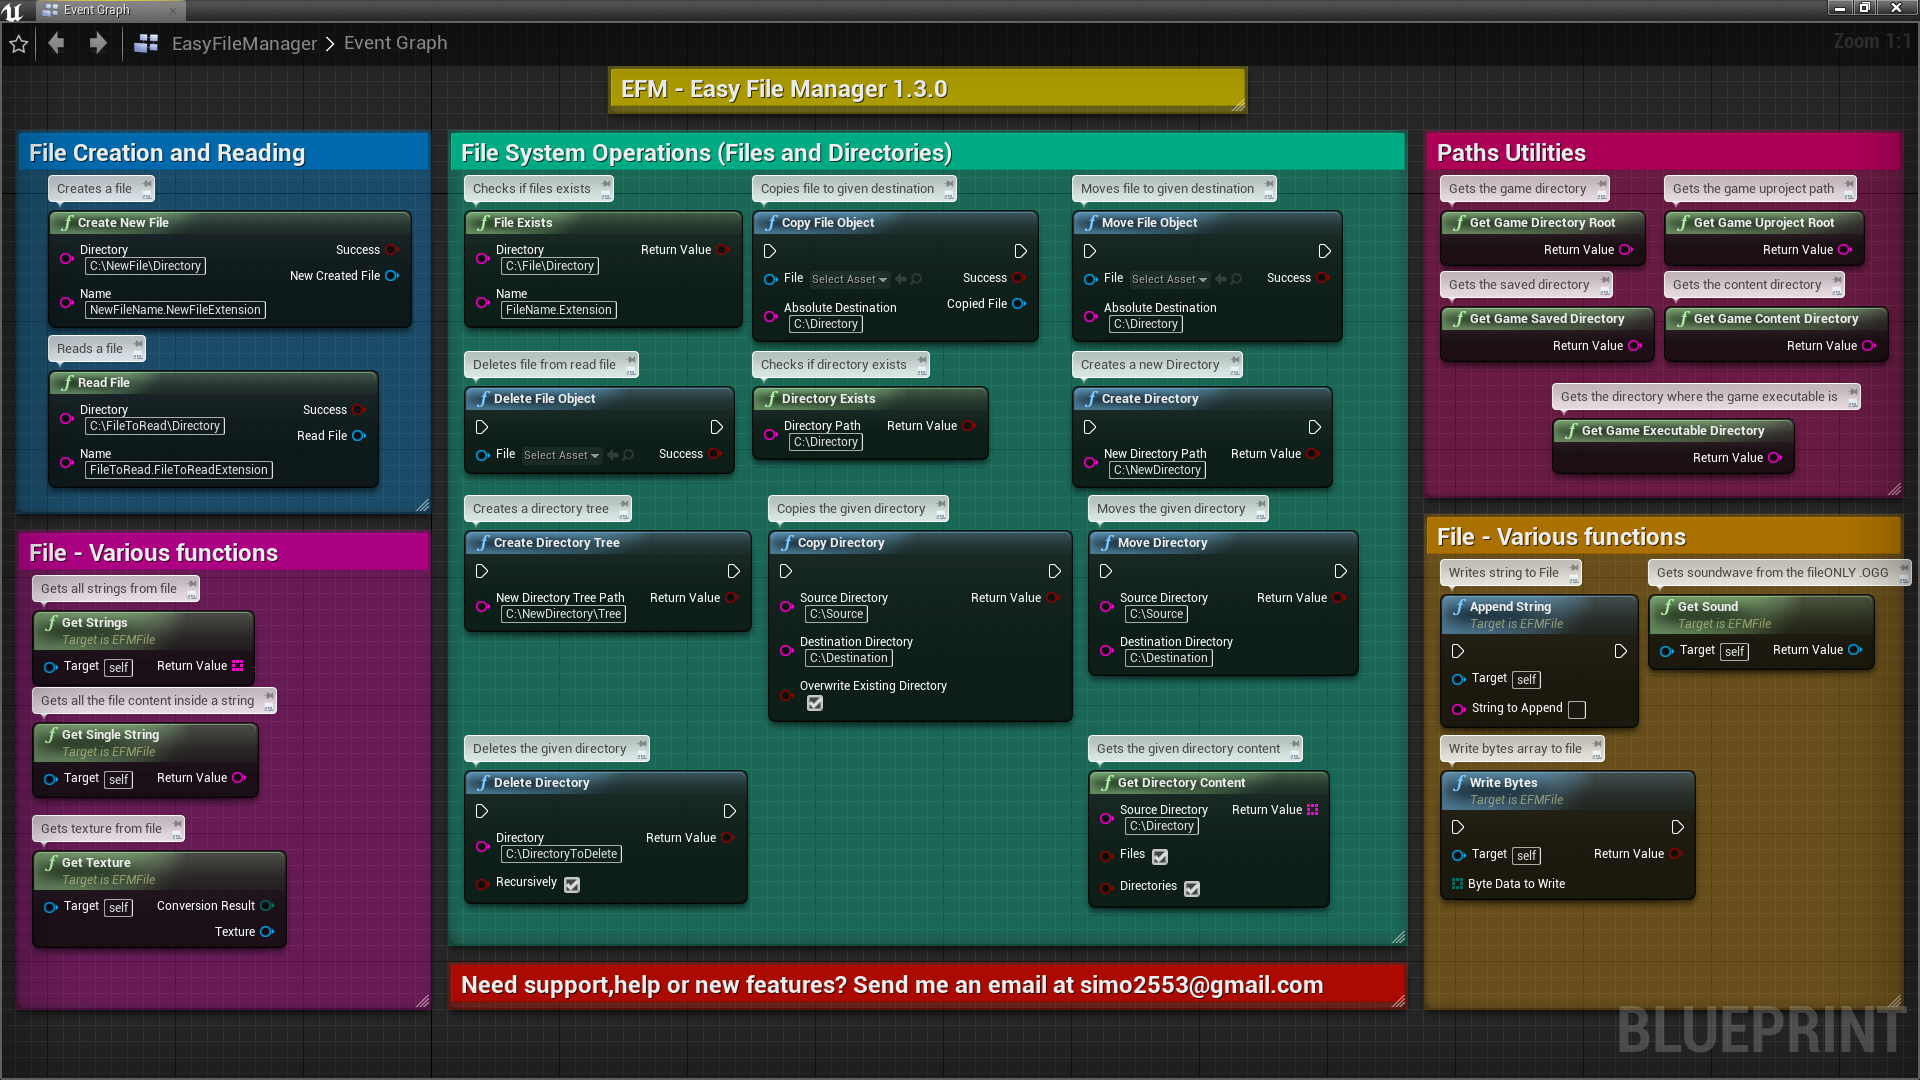 Easy File Manager - EFM by Dawnfall Arts in Code Plugins - UE4